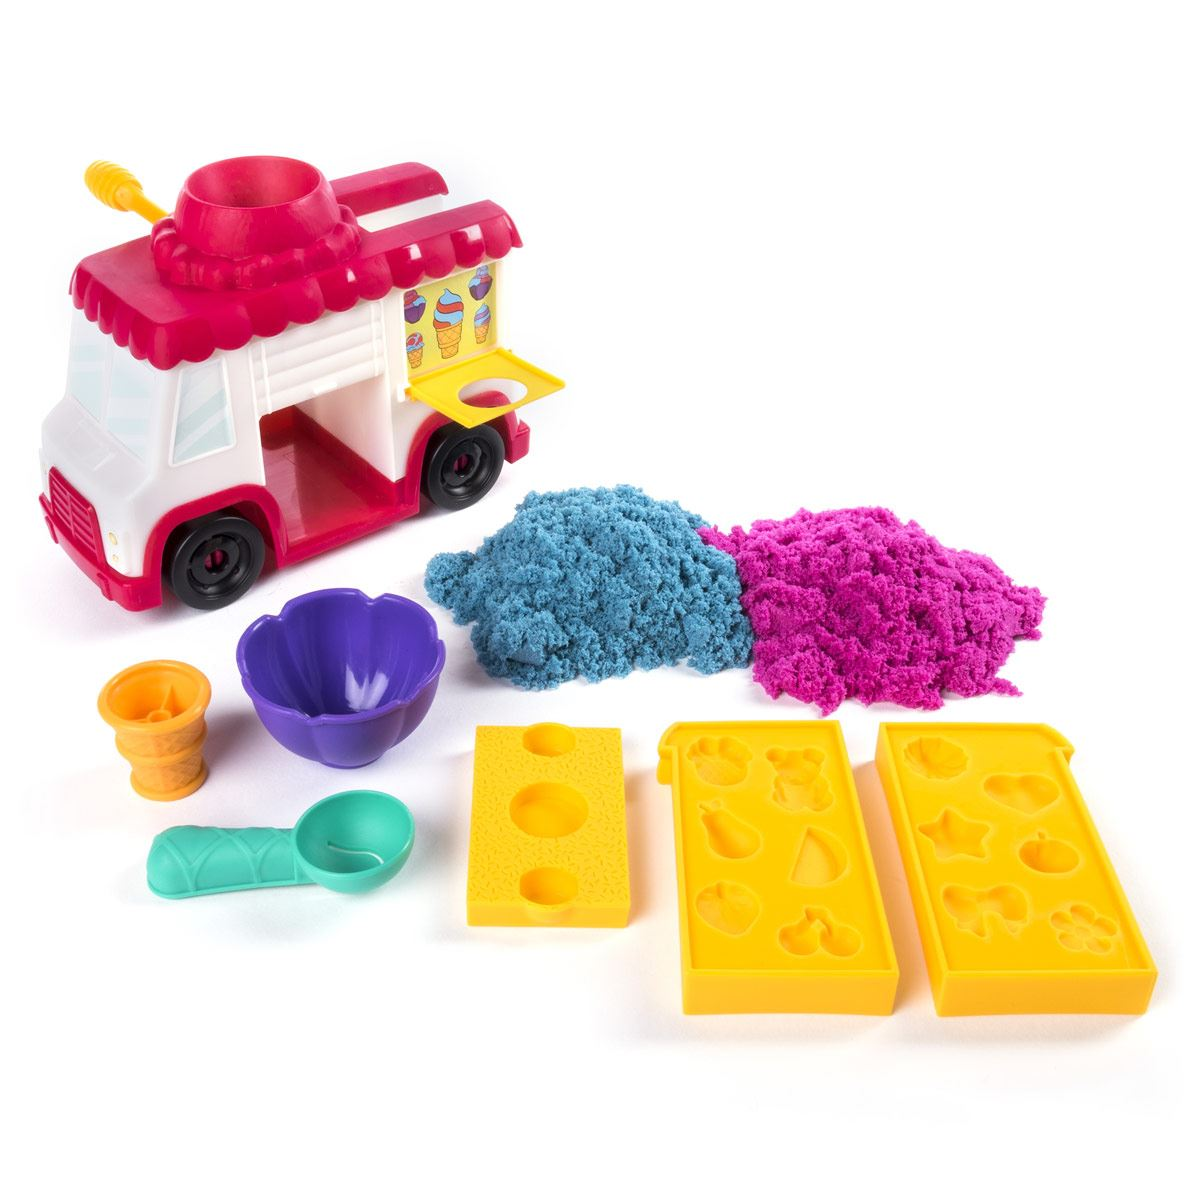 Set Camión de Helados Kinetic Sand